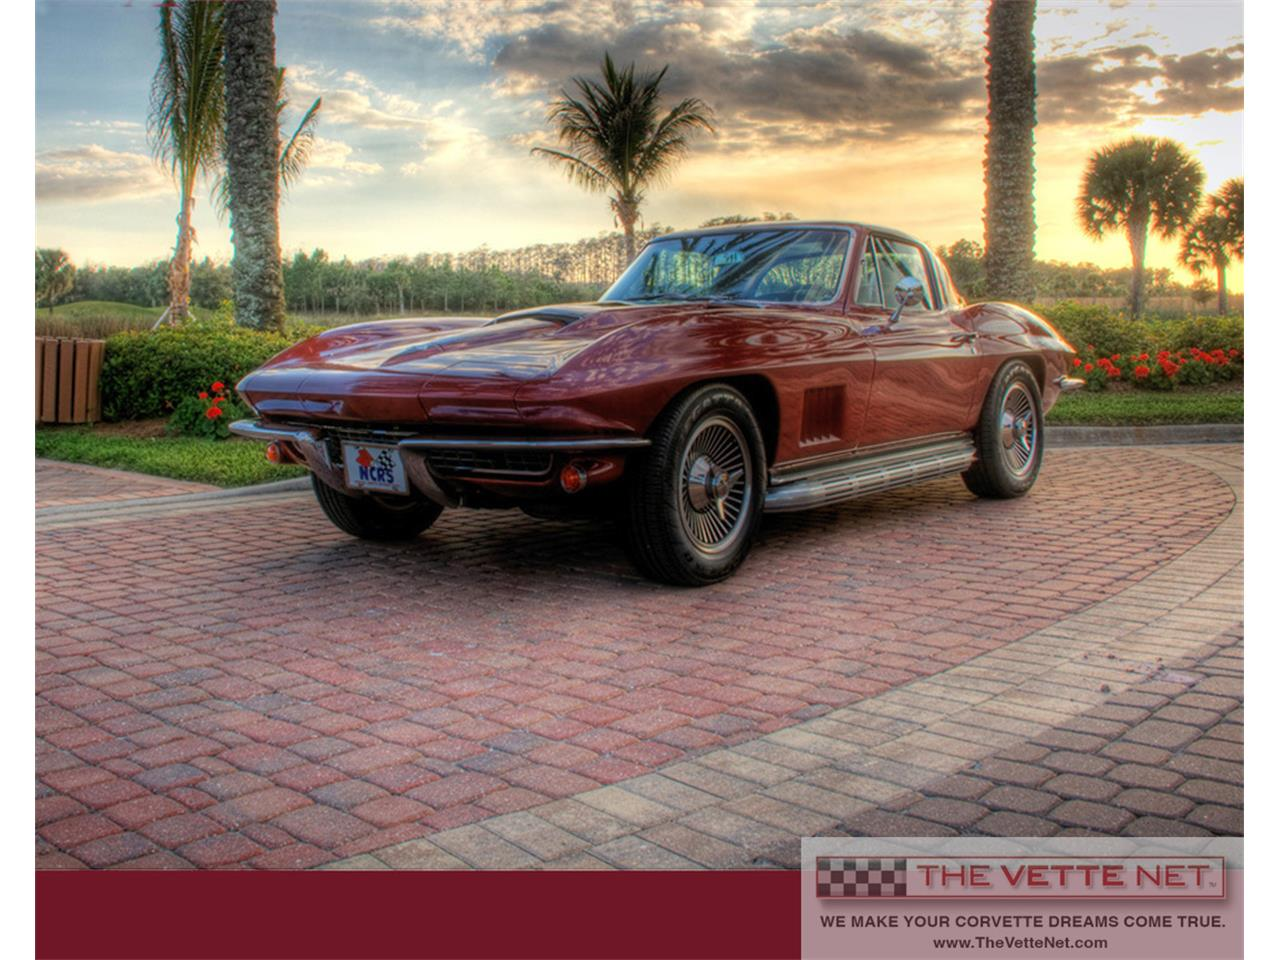 1967 Chevrolet Corvette for sale in Sarasota, FL